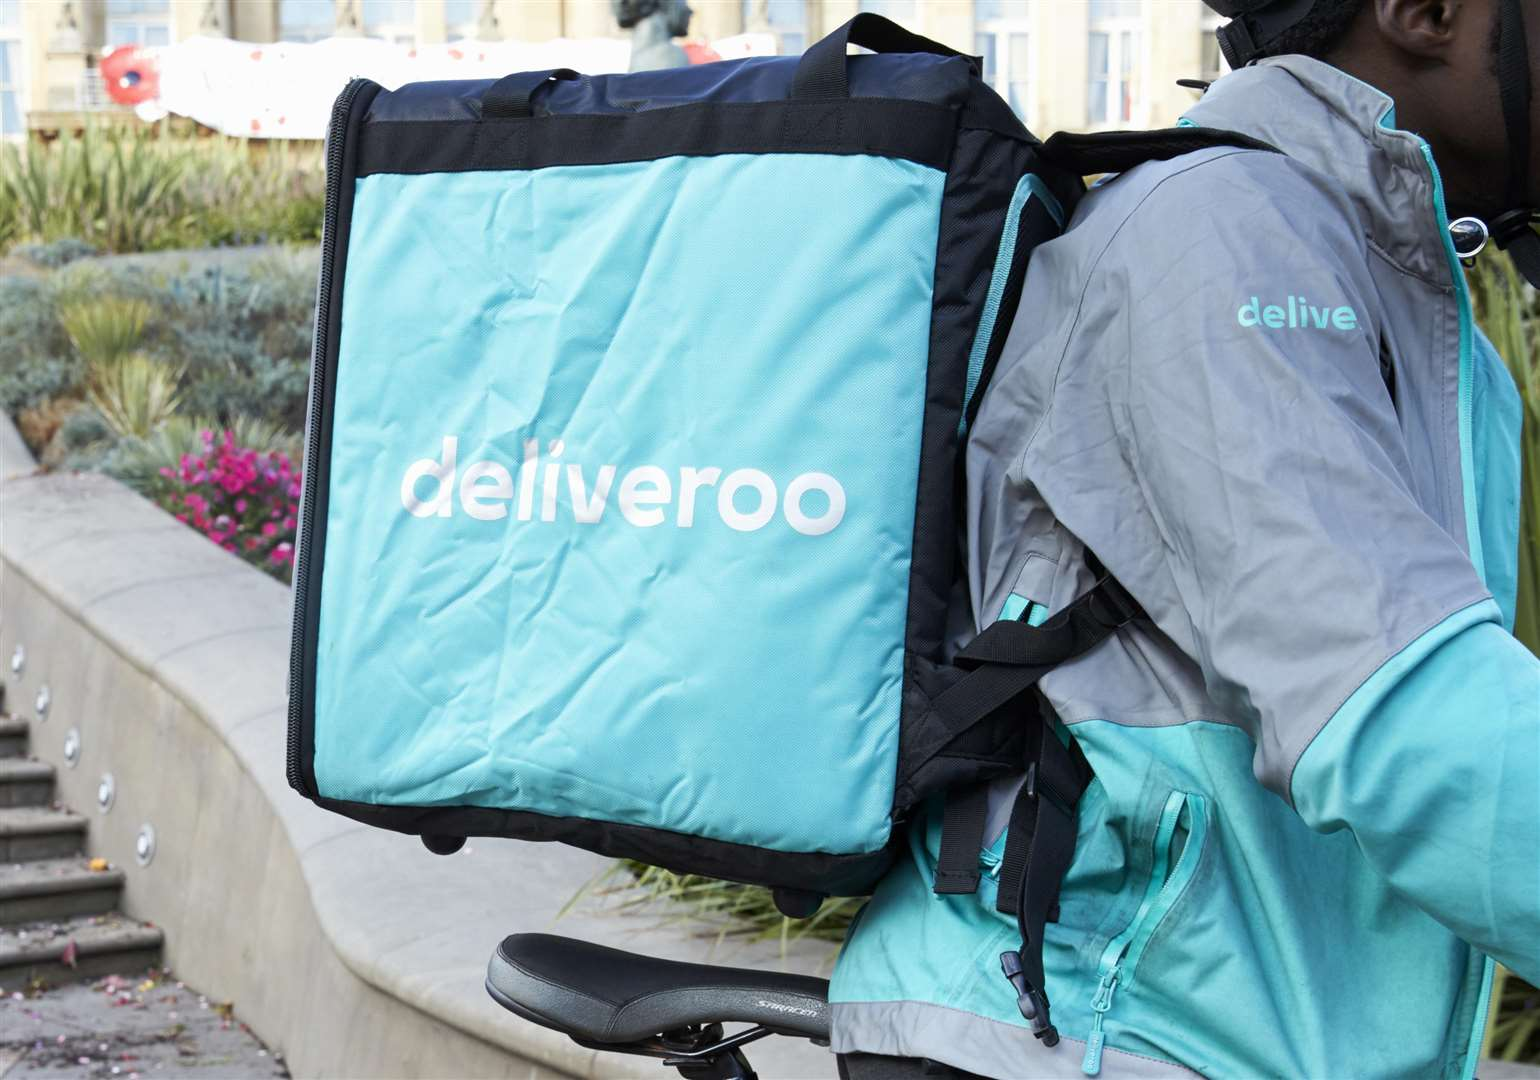 Deliveroo to launch new service this month